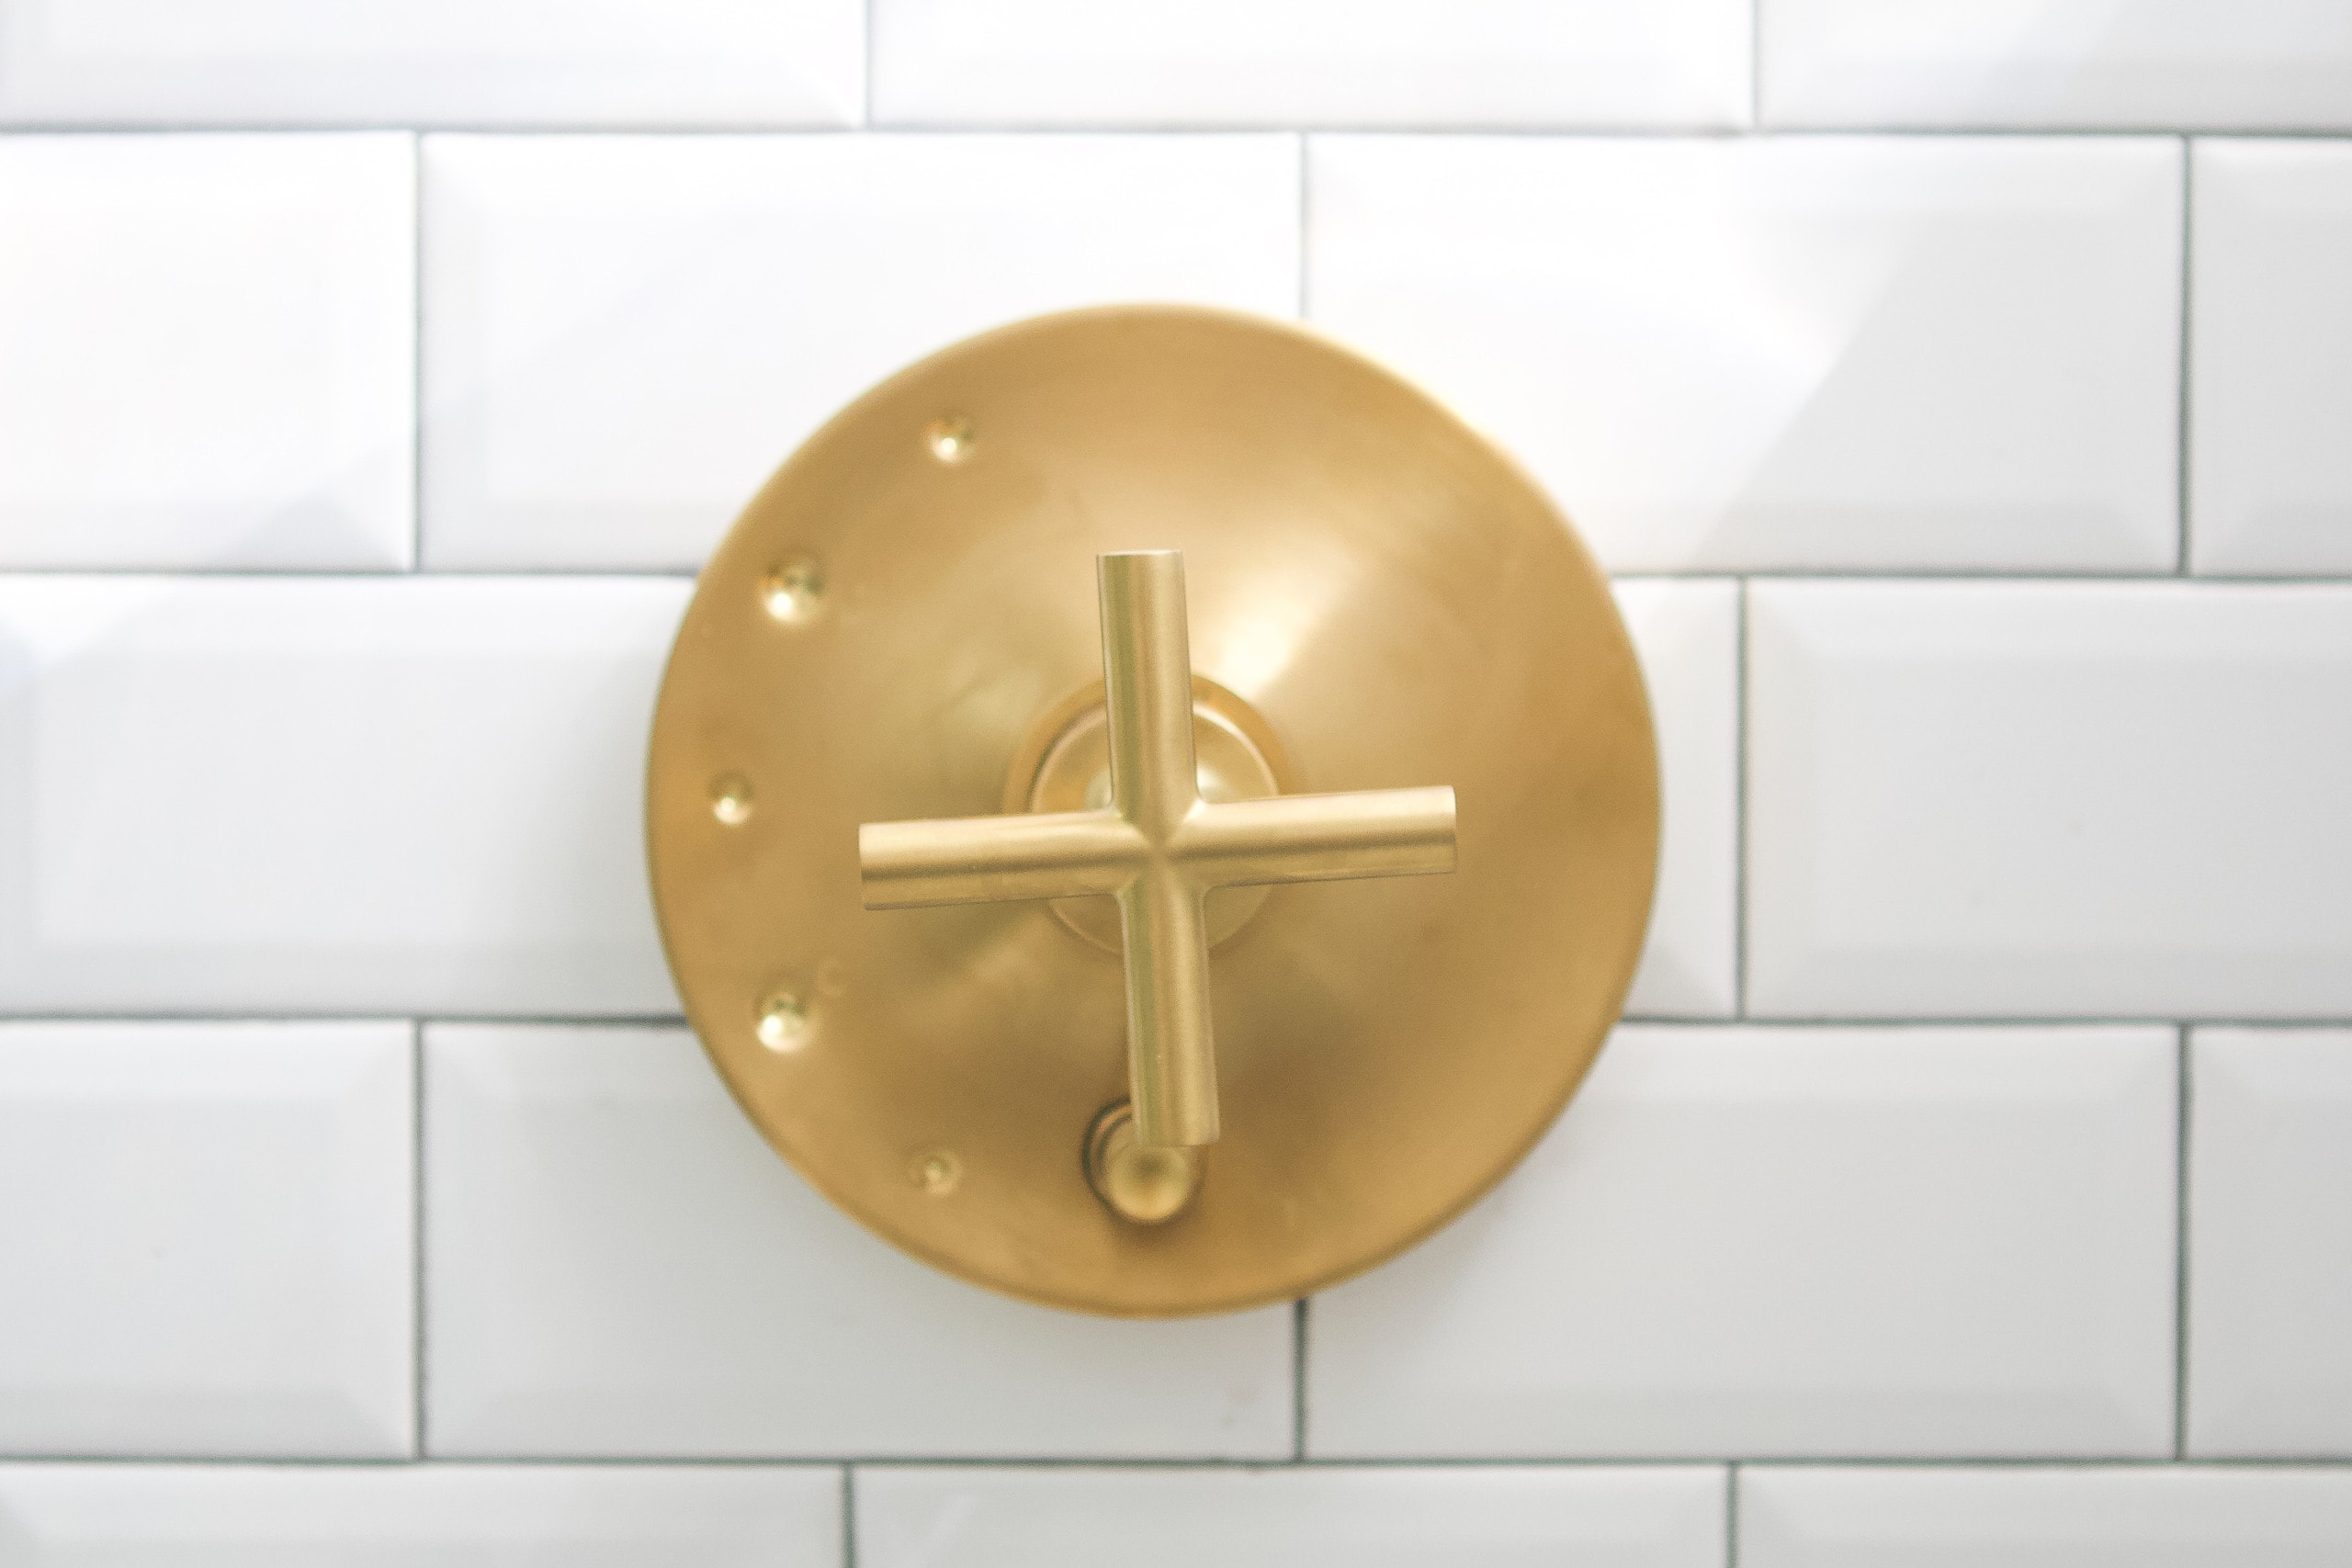 Brushed brass hardware in the shower